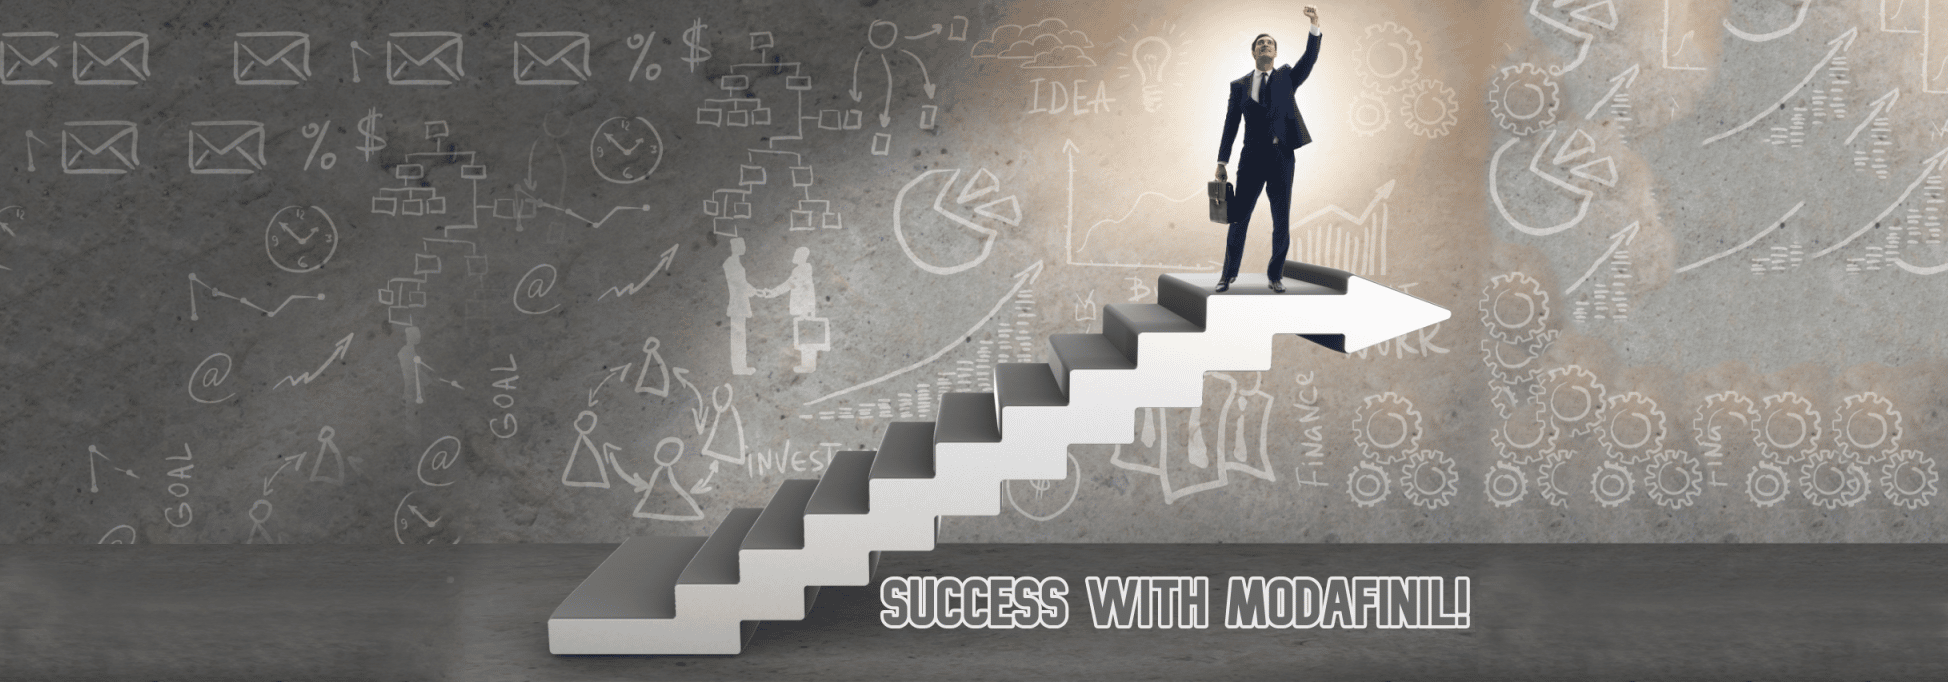 success with modafinil